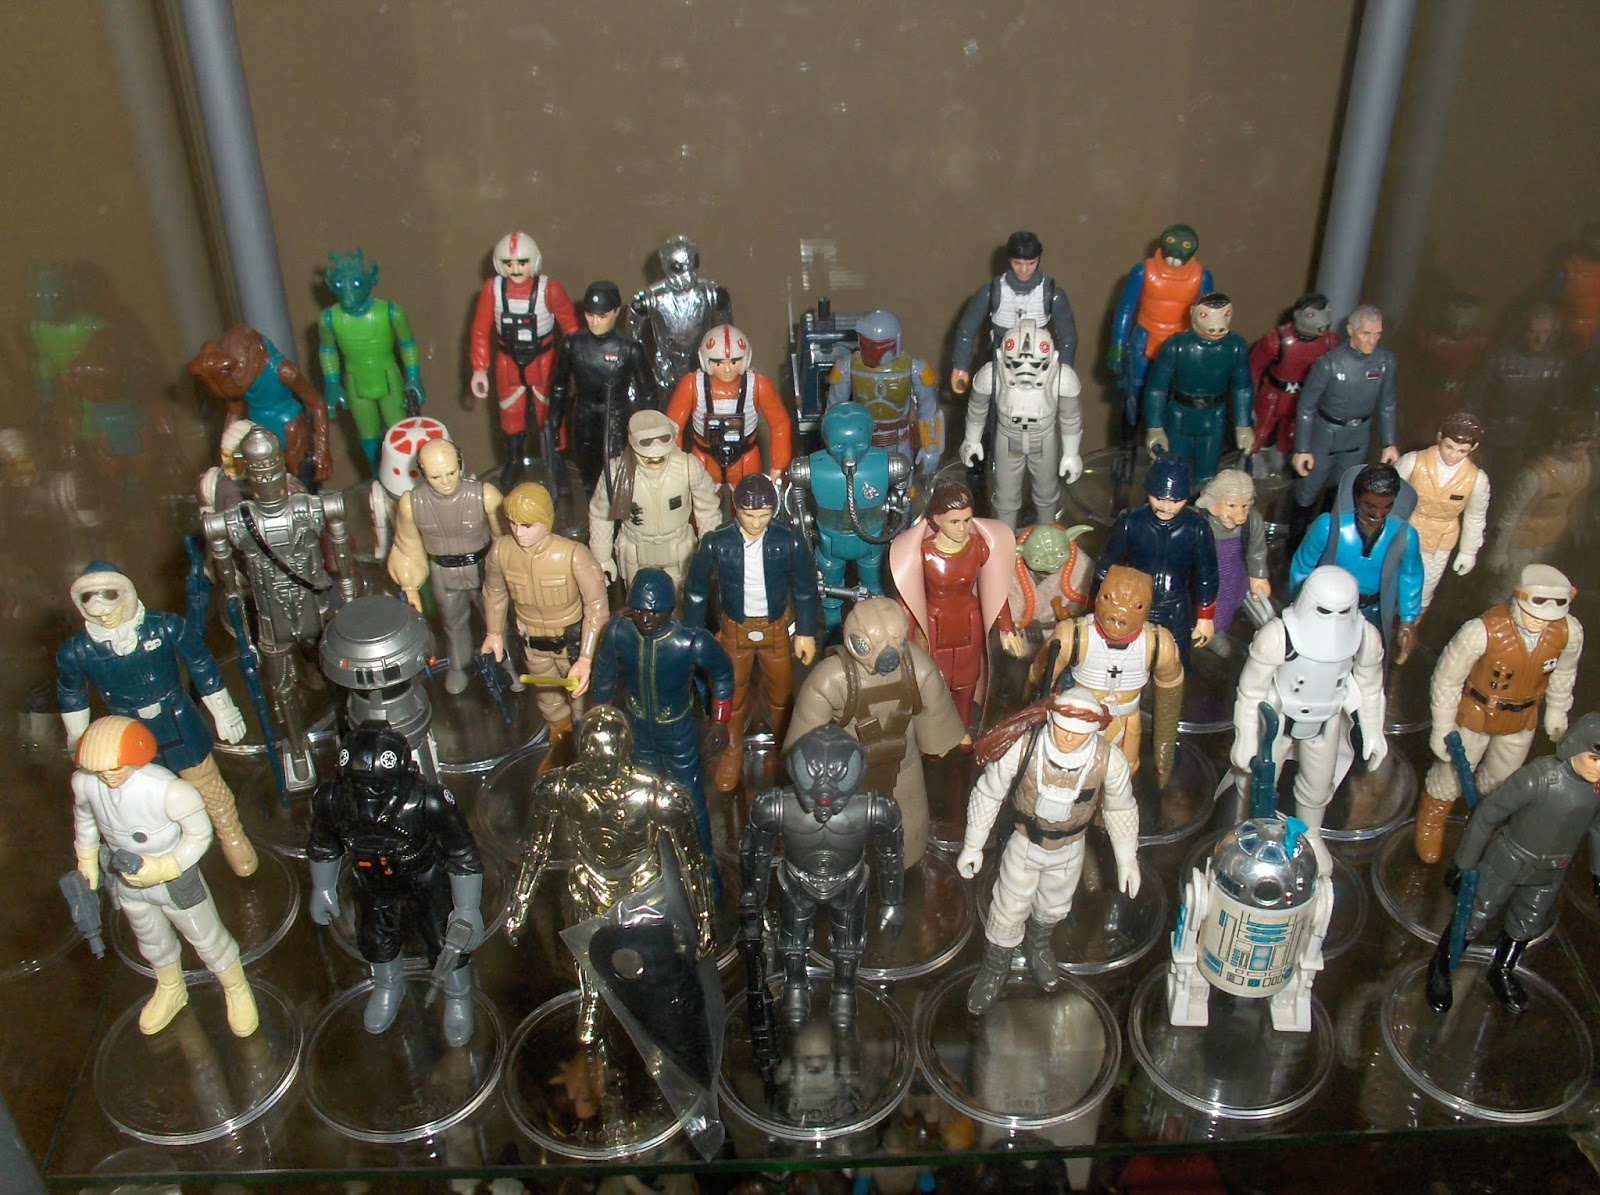 Star Wars Vintage Toys : Vintage kenner star wars toys figure collection